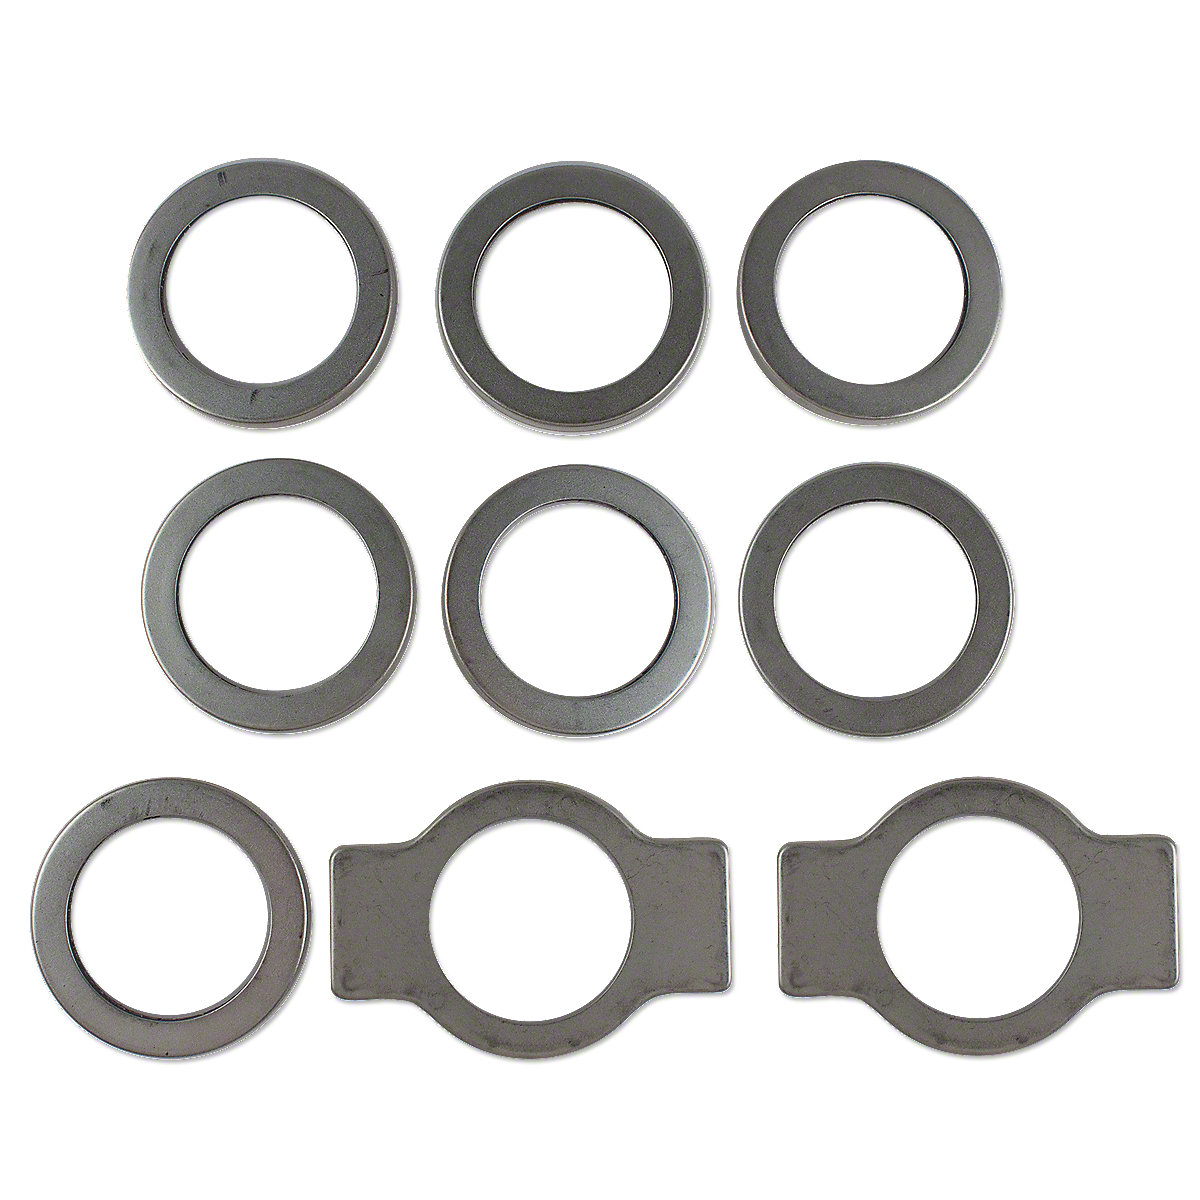 Intake And Exhaust Manifold Gasket Set For Allis Chalmers D19 Gas